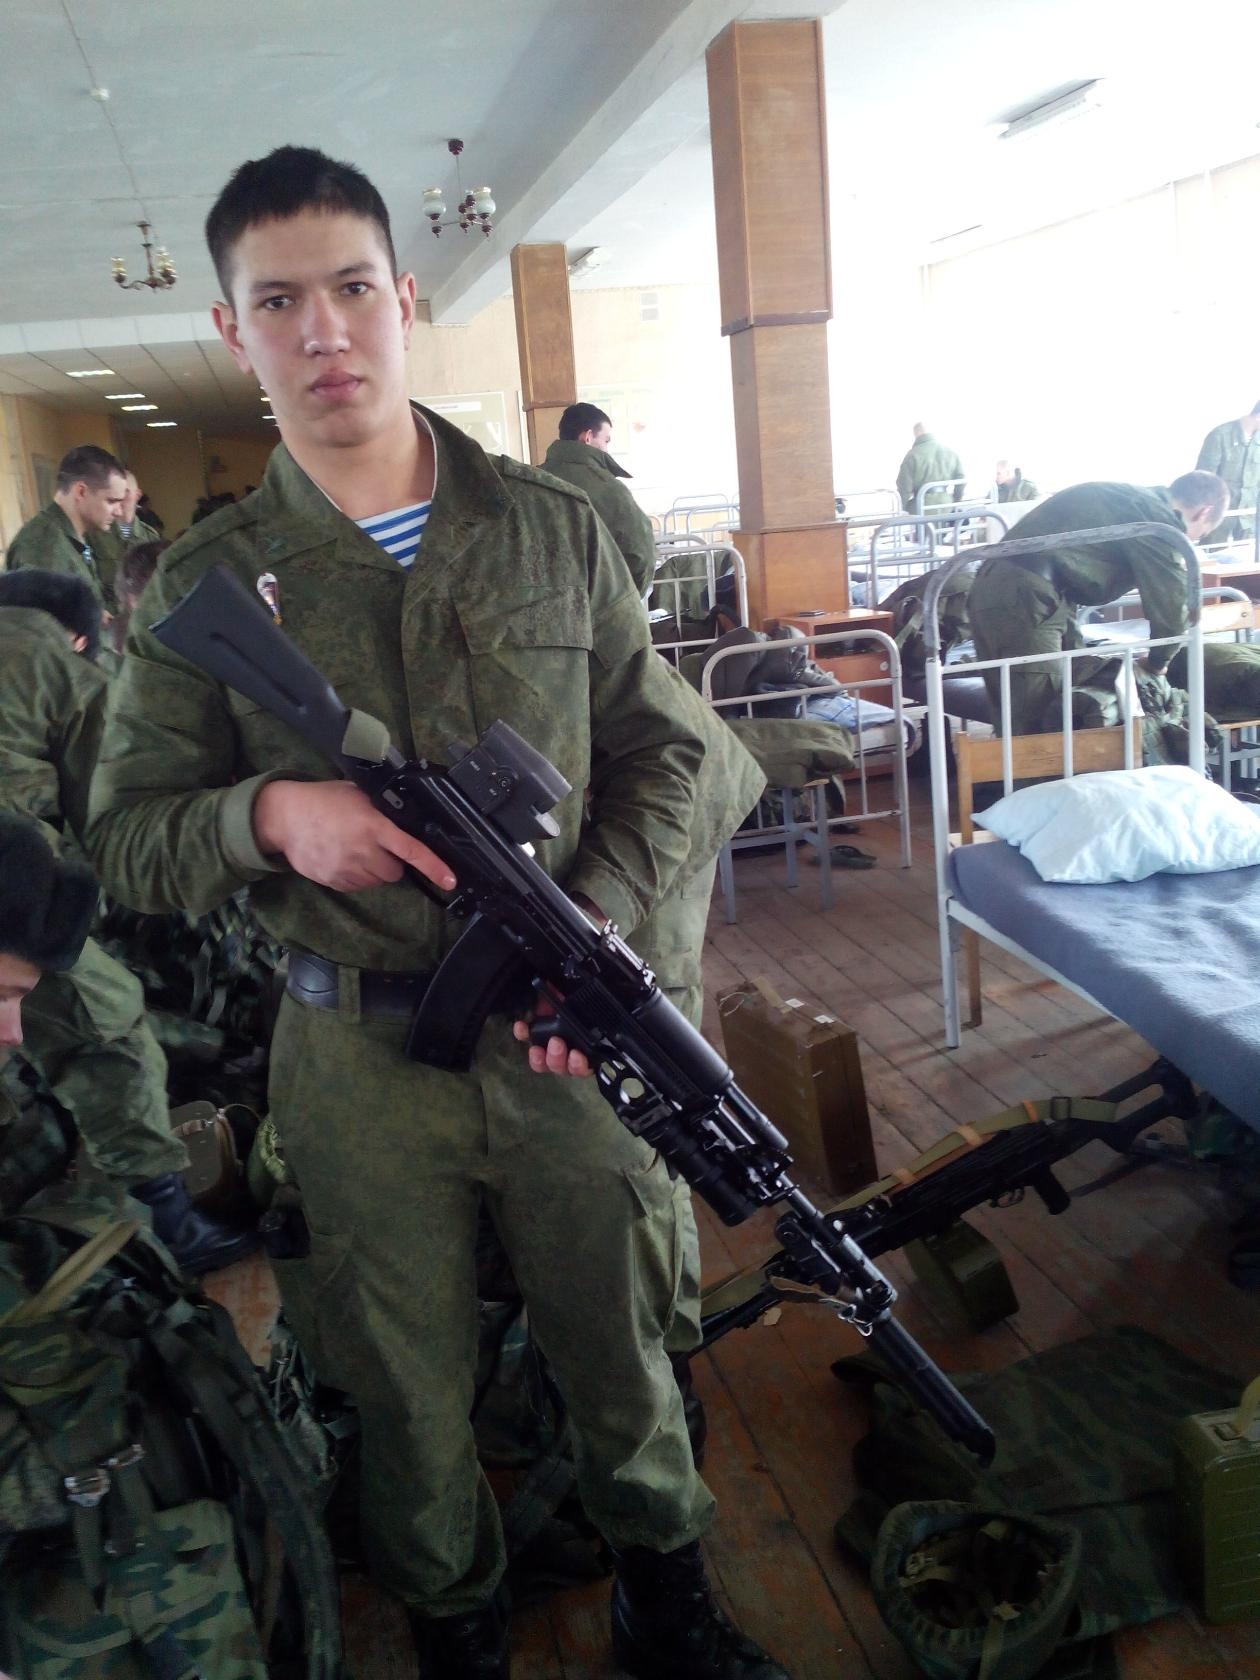 Timur Mamayusupov with AK gun used by Russian Special Forces only.